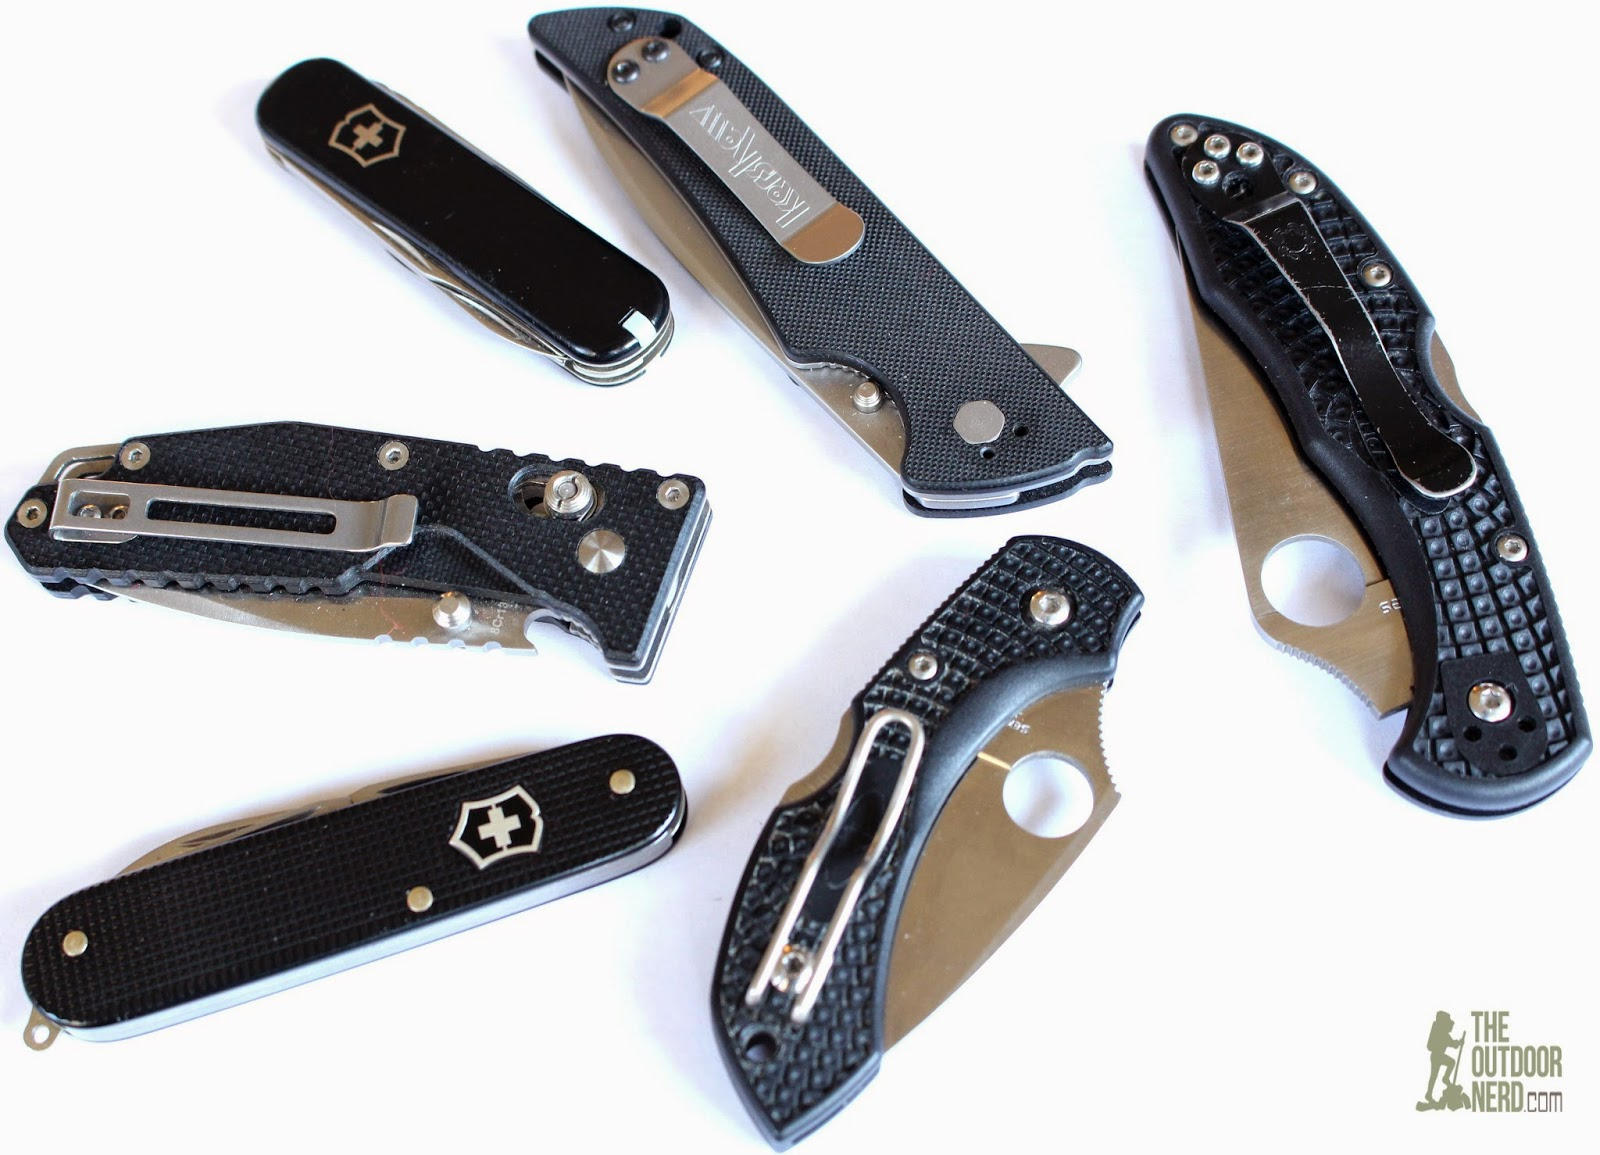 EDC Pocket Knives From Spyderco, Kershaw, Victorinox and SanRenMu